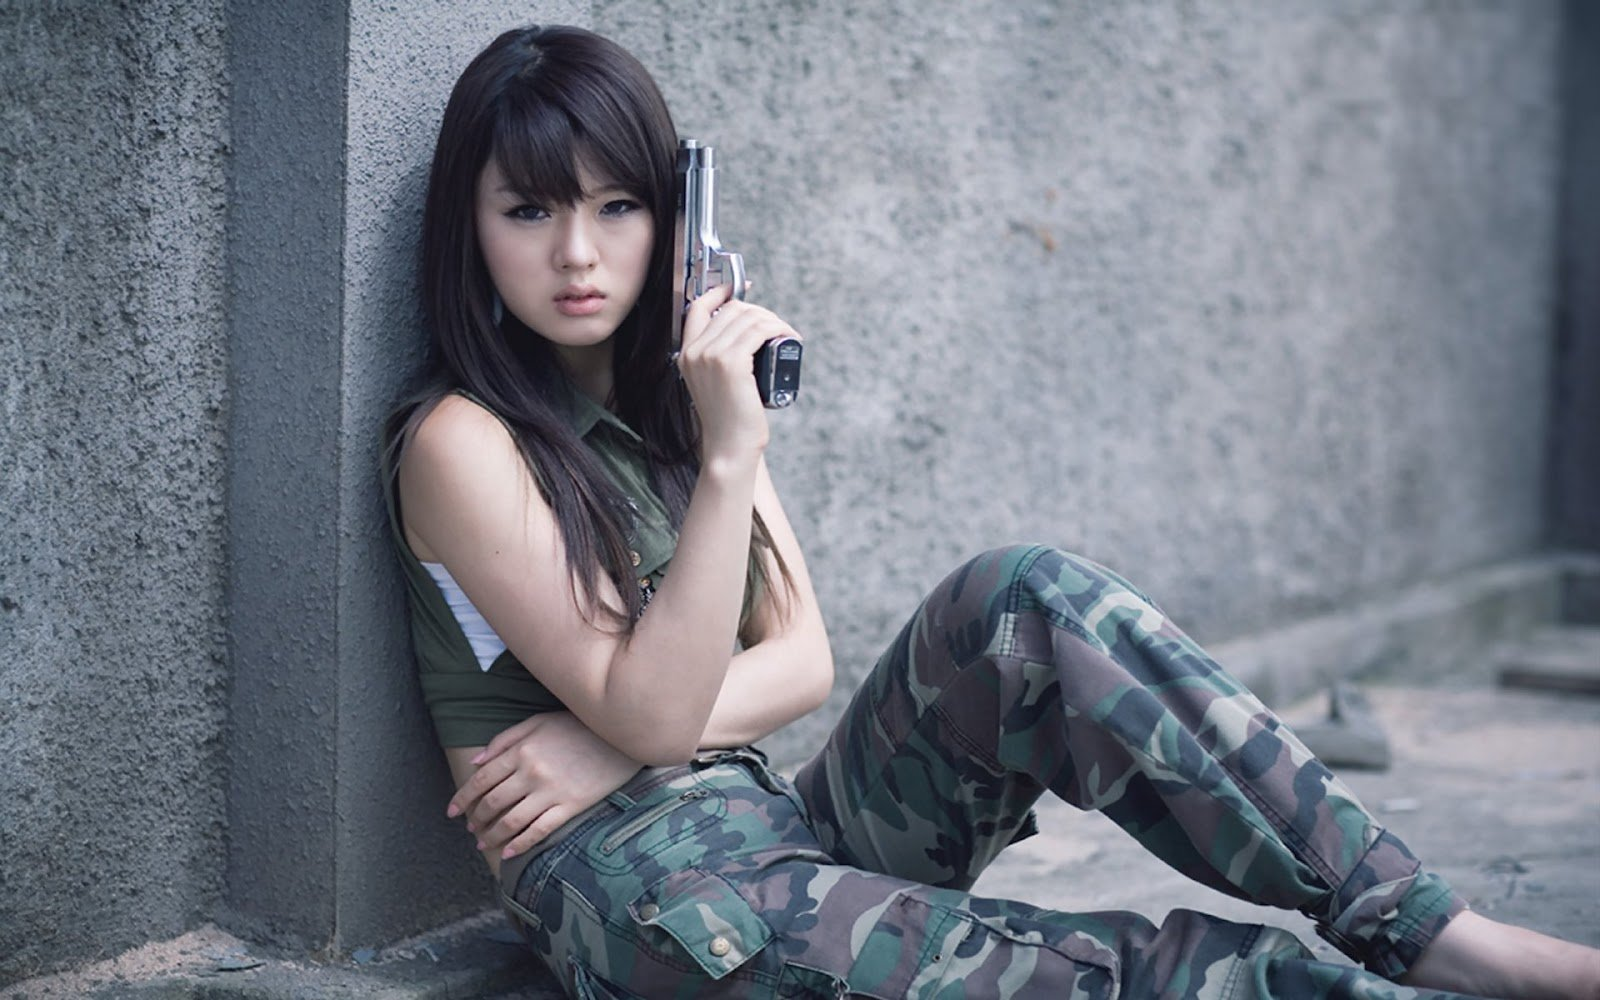 Cute Hwang Mi Hee With Gun Desktop Wallpaper 1600x1000